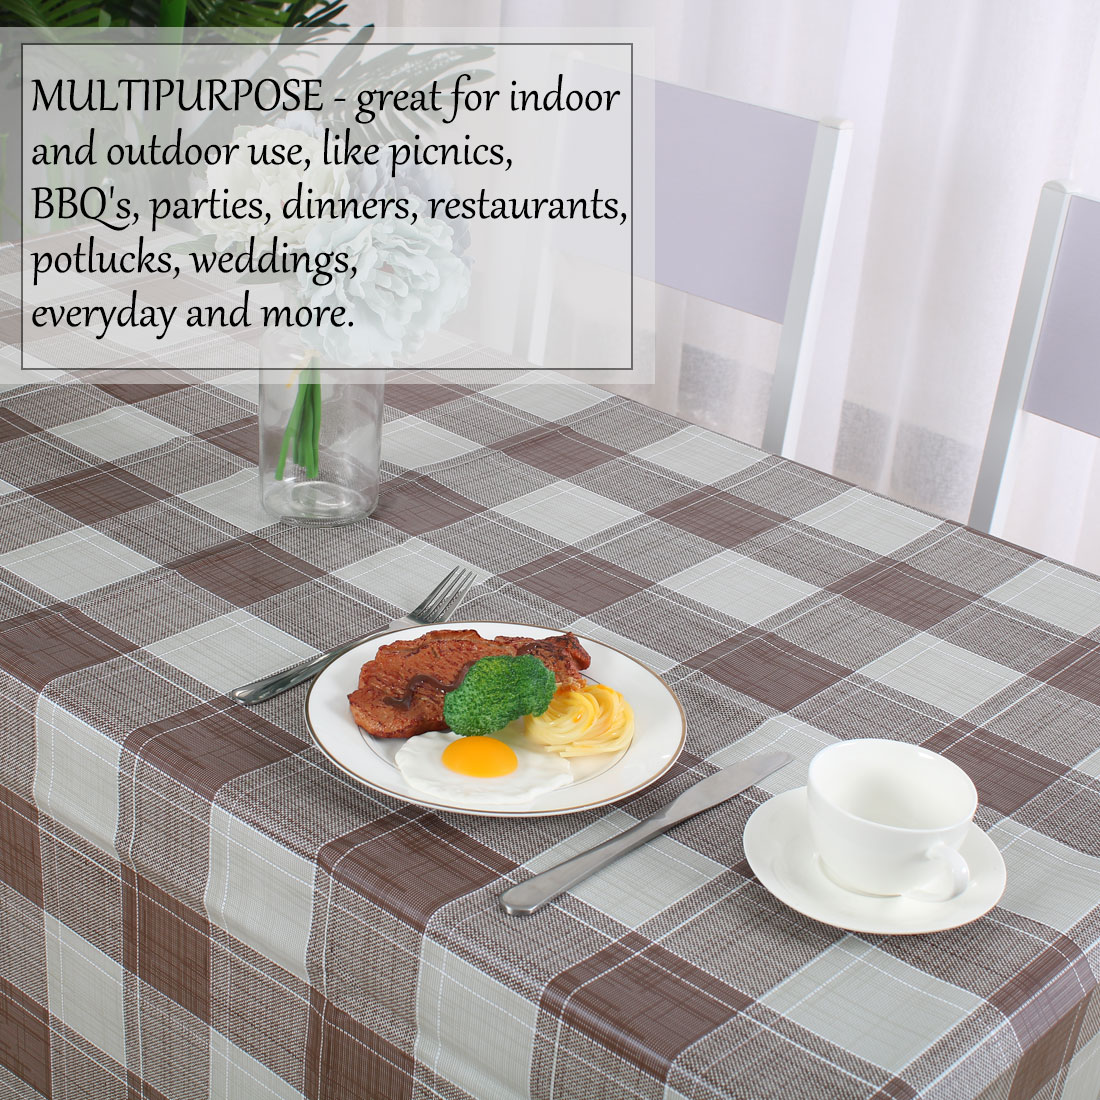 """Tablecloth PVC Rectangle Table Cloth Water Resistant Plaid Pattern 39""""x63"""",#3 - image 5 of 7"""